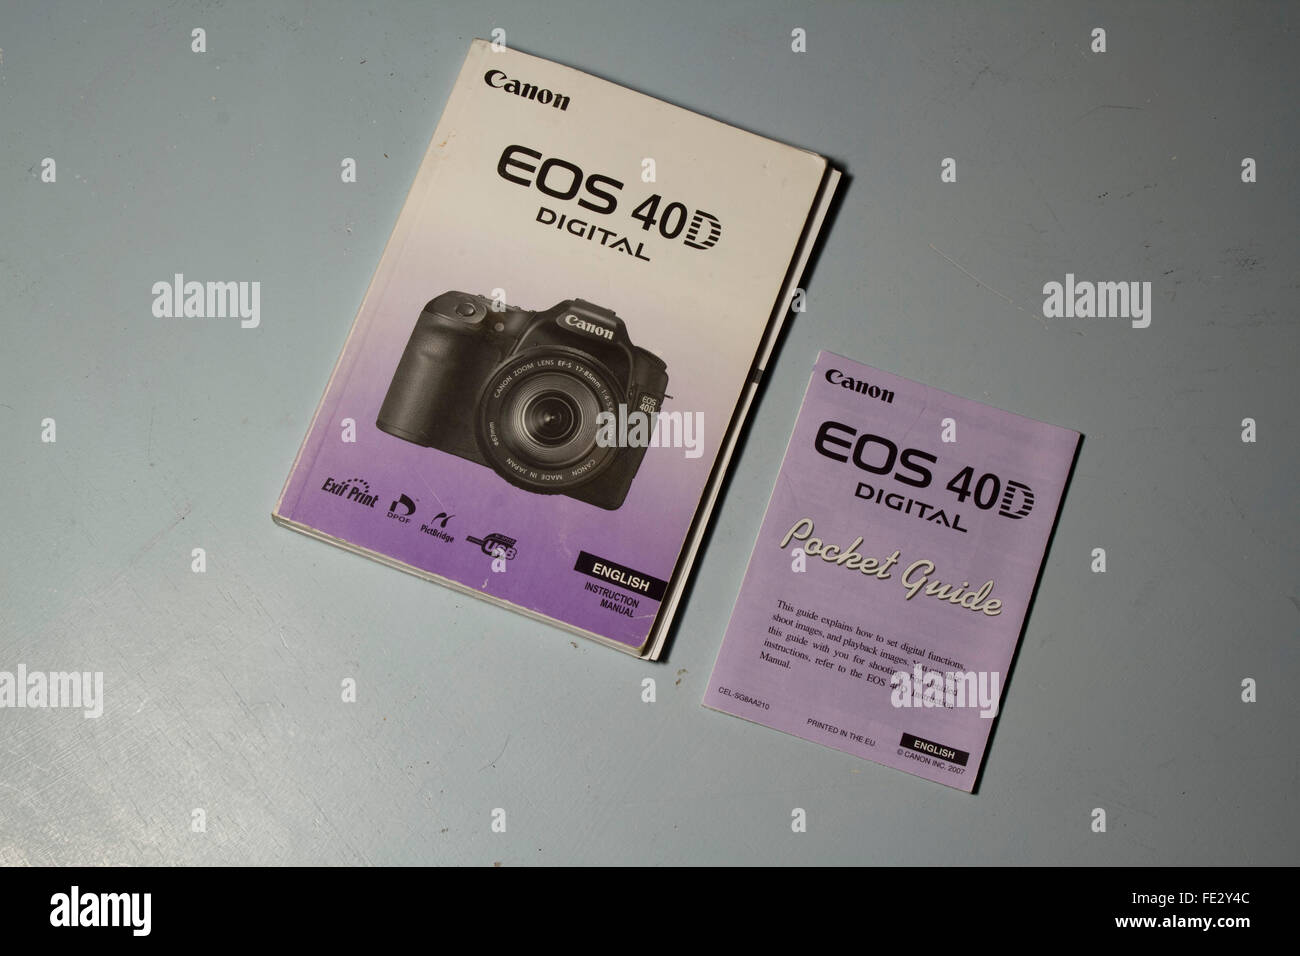 user manual and pocket guide for canon 40d dslr camera stock photo rh alamy com Canon in D Canon Photography